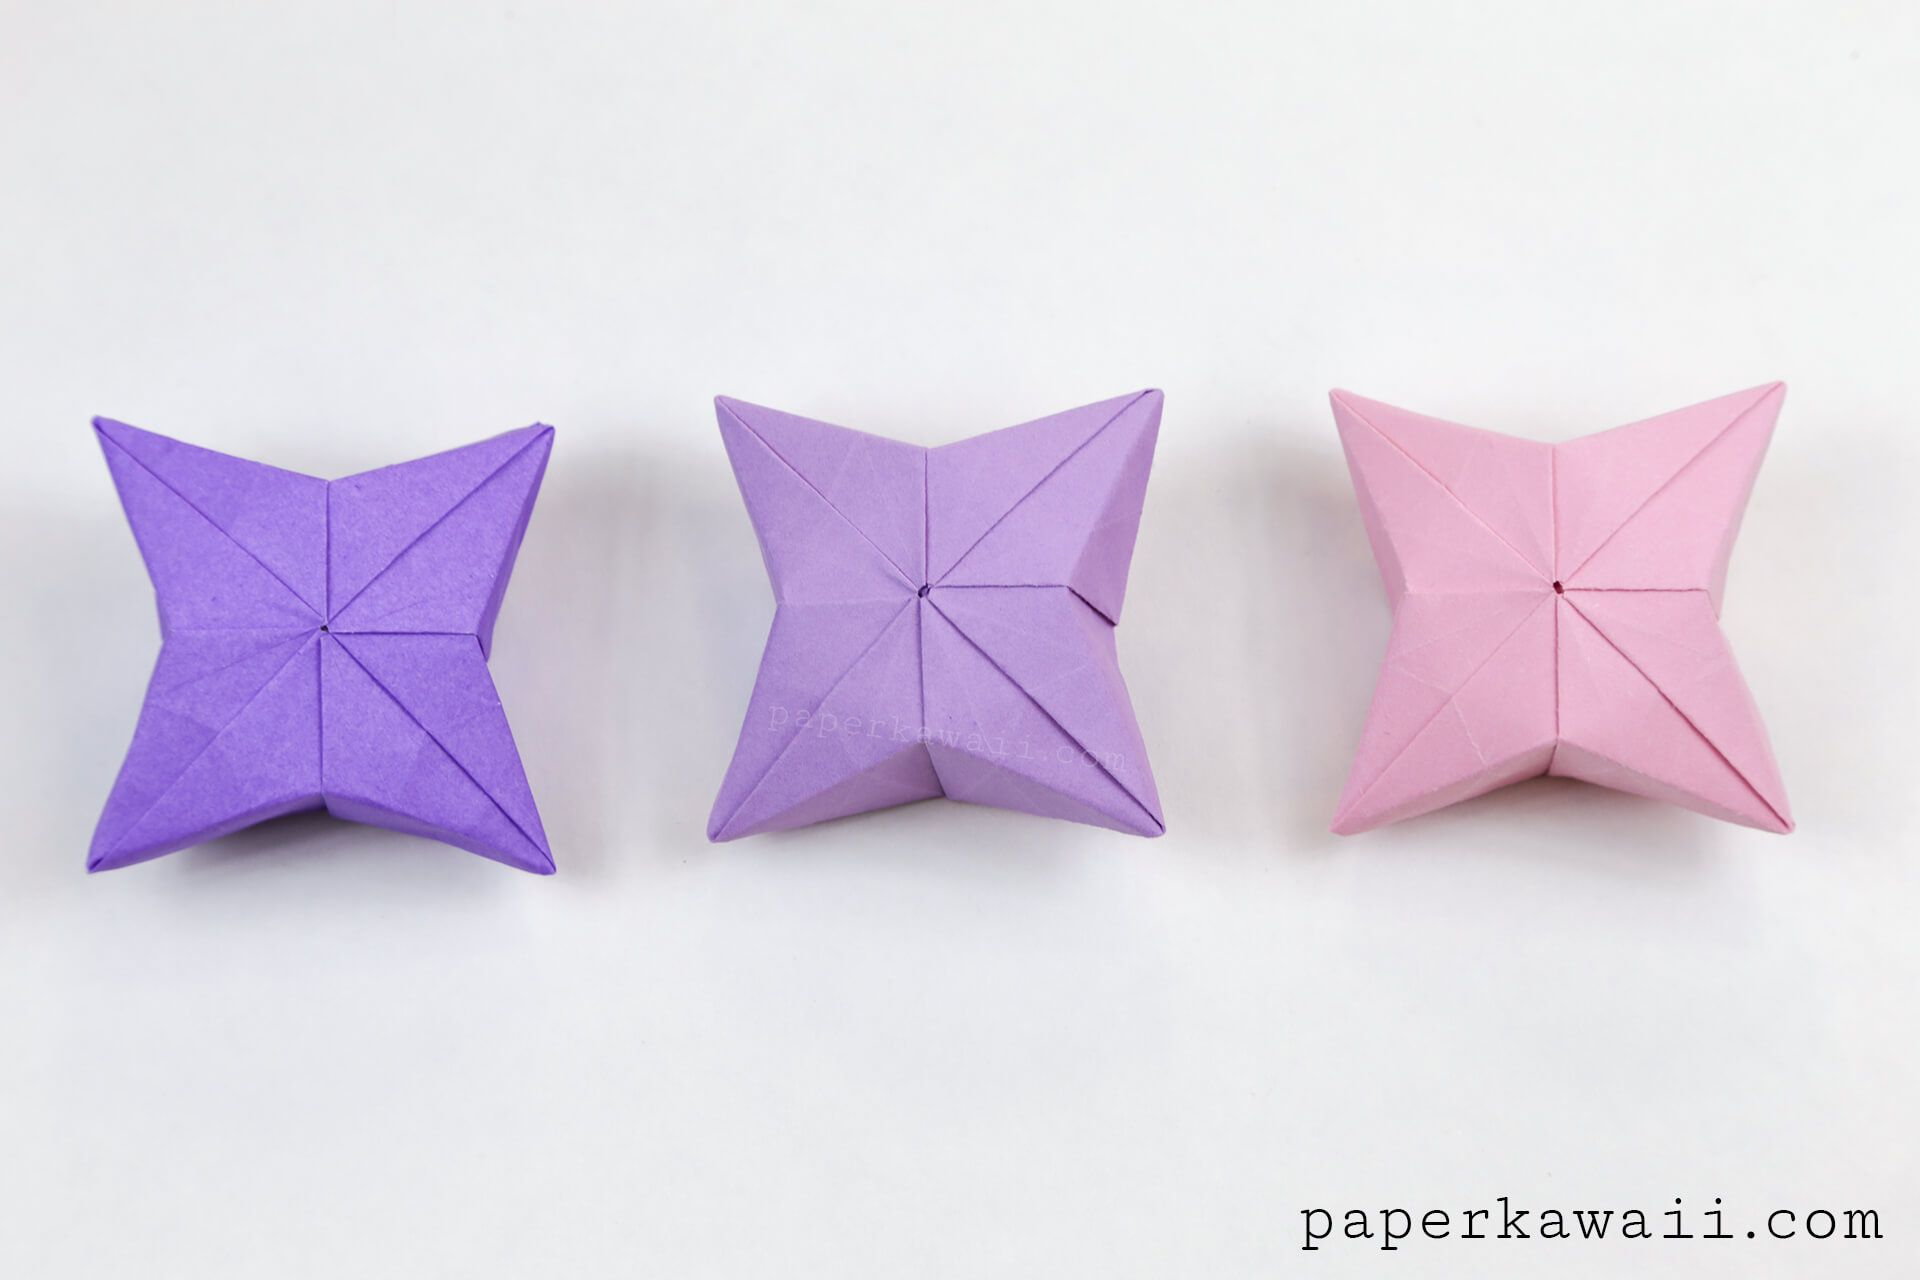 3D Origami Puffy Star Tutorial | Paper Kawaii - Origami ... - photo#21